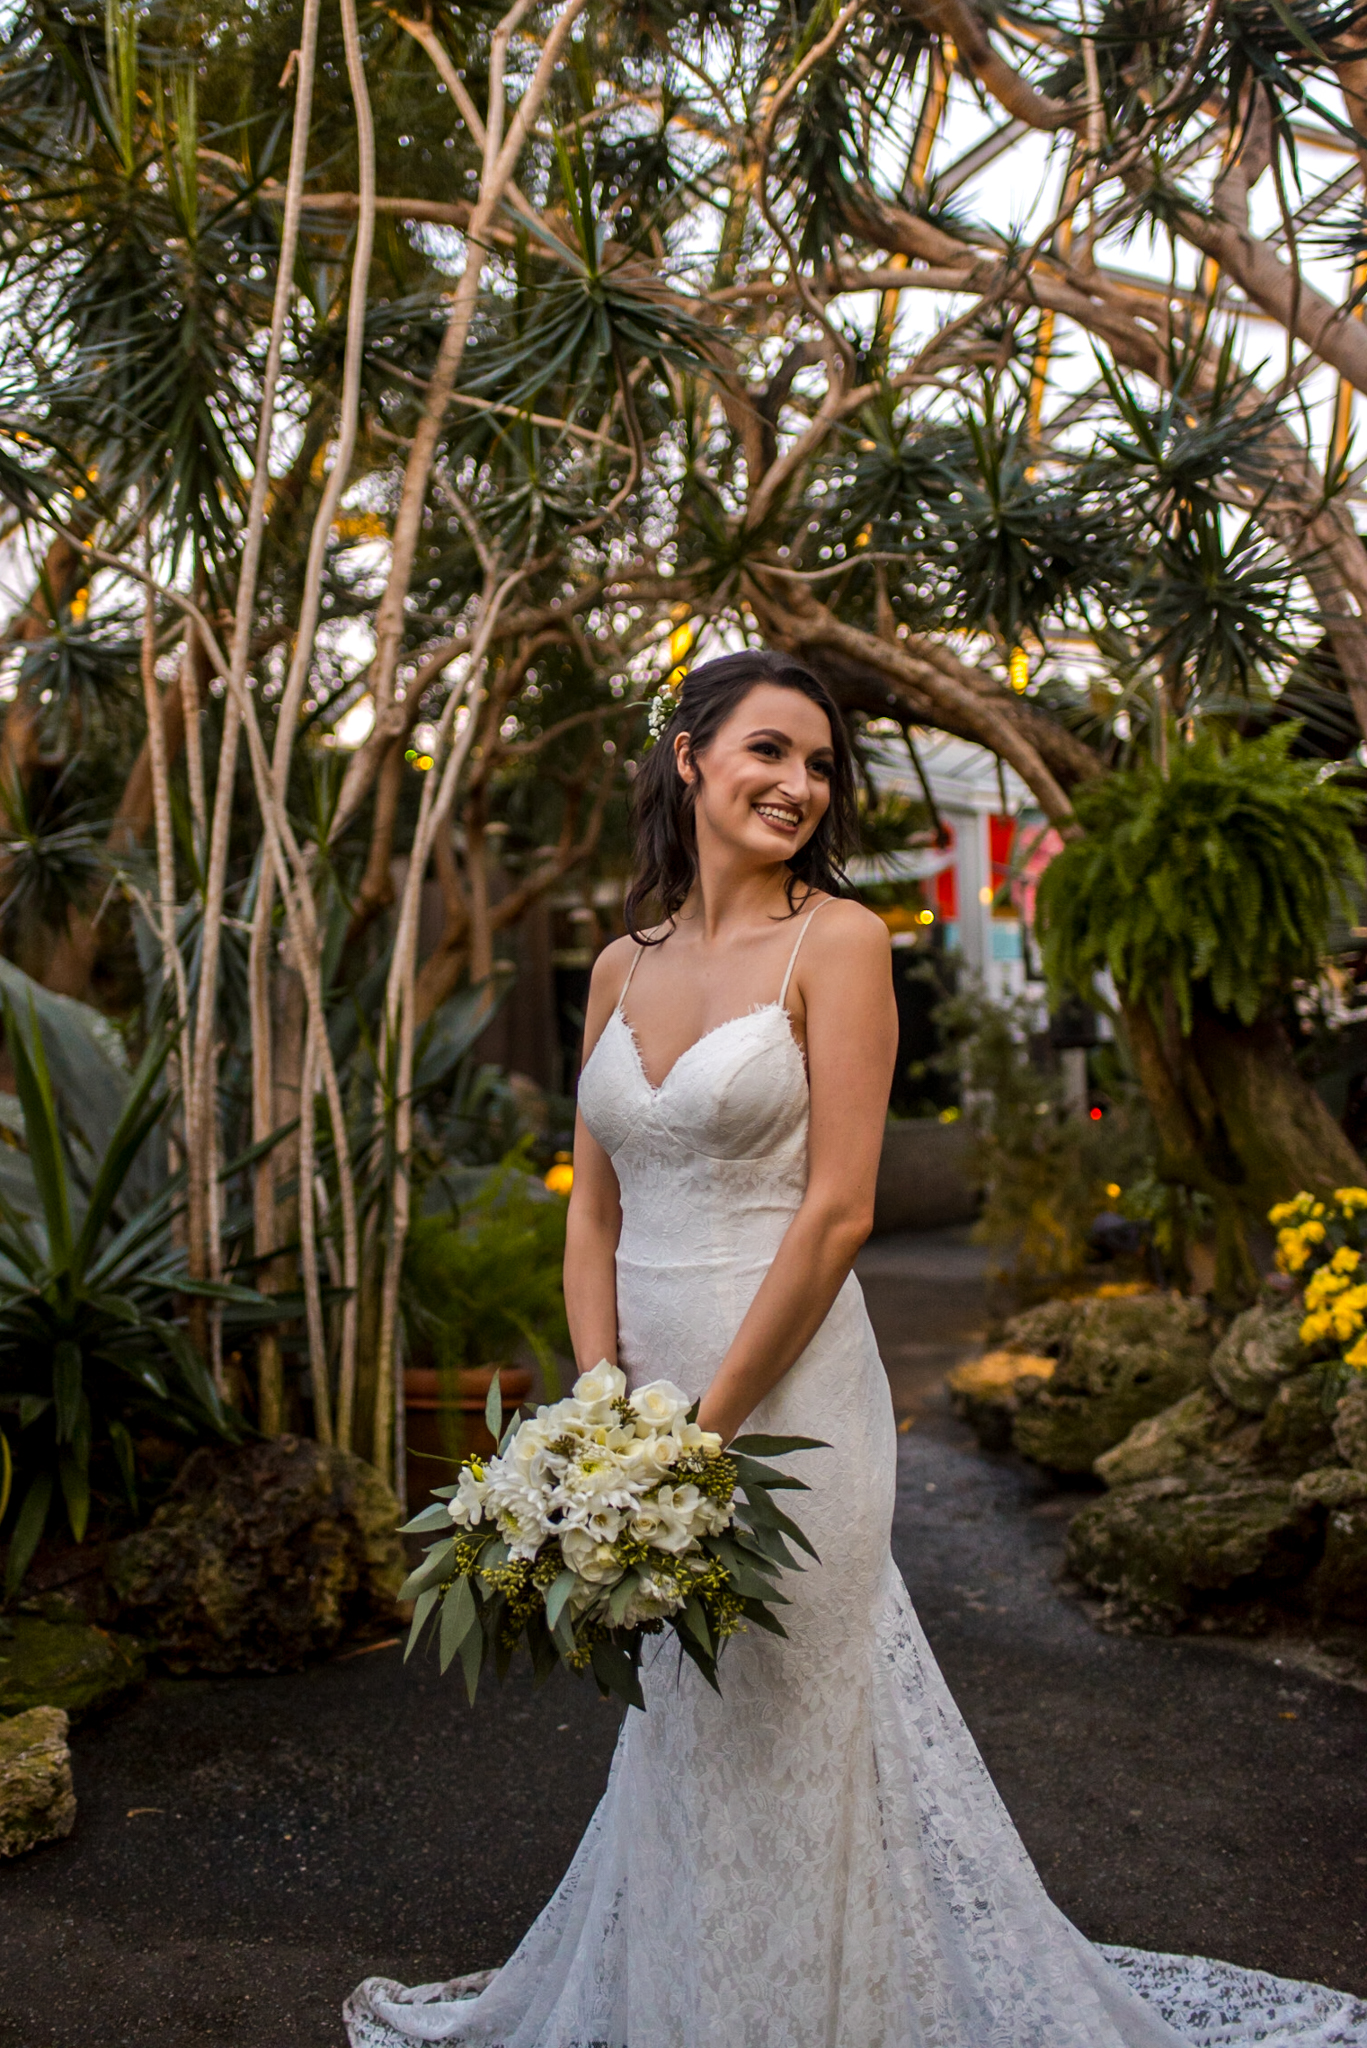 Queen Elizabeth Park Wedding Photographer-72.jpg